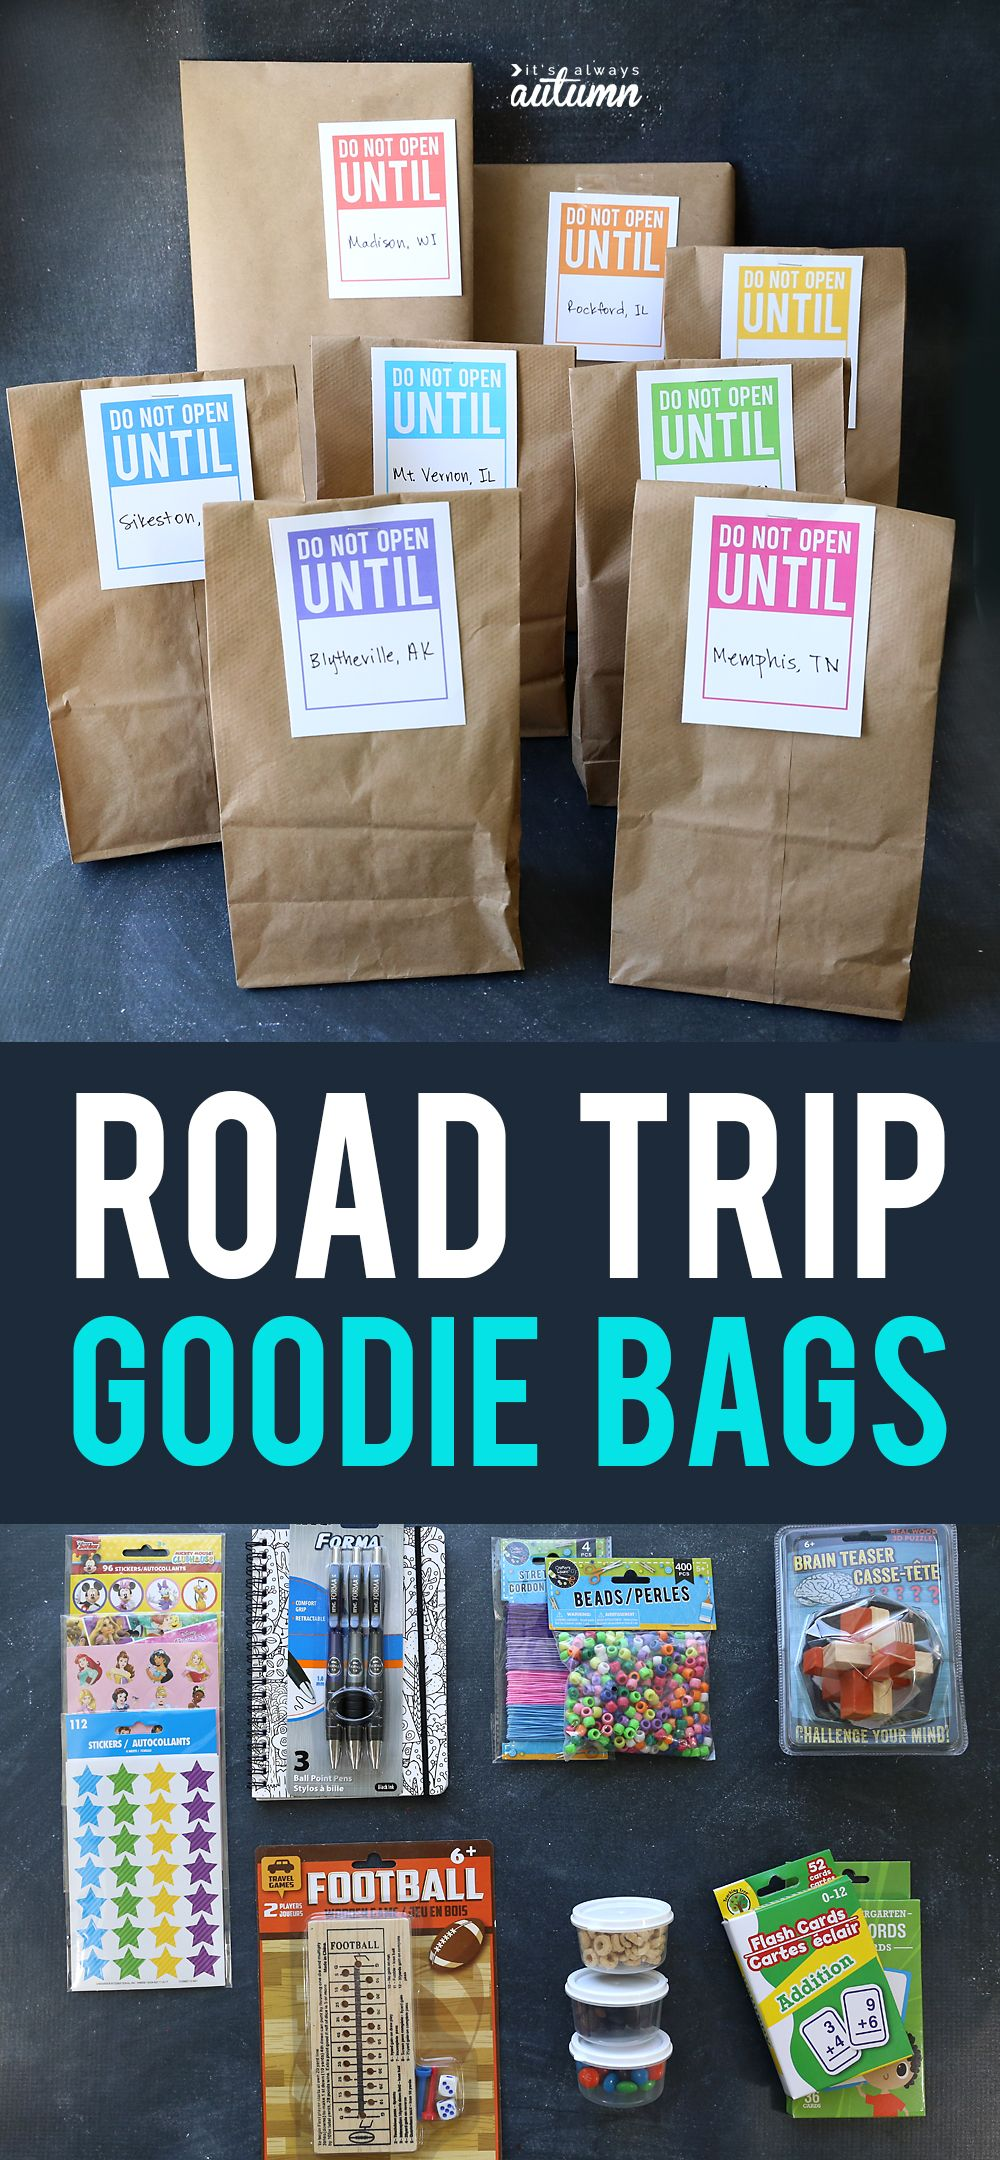 Road trip goodie bags: keeps kids occupied + count down the trip #kids